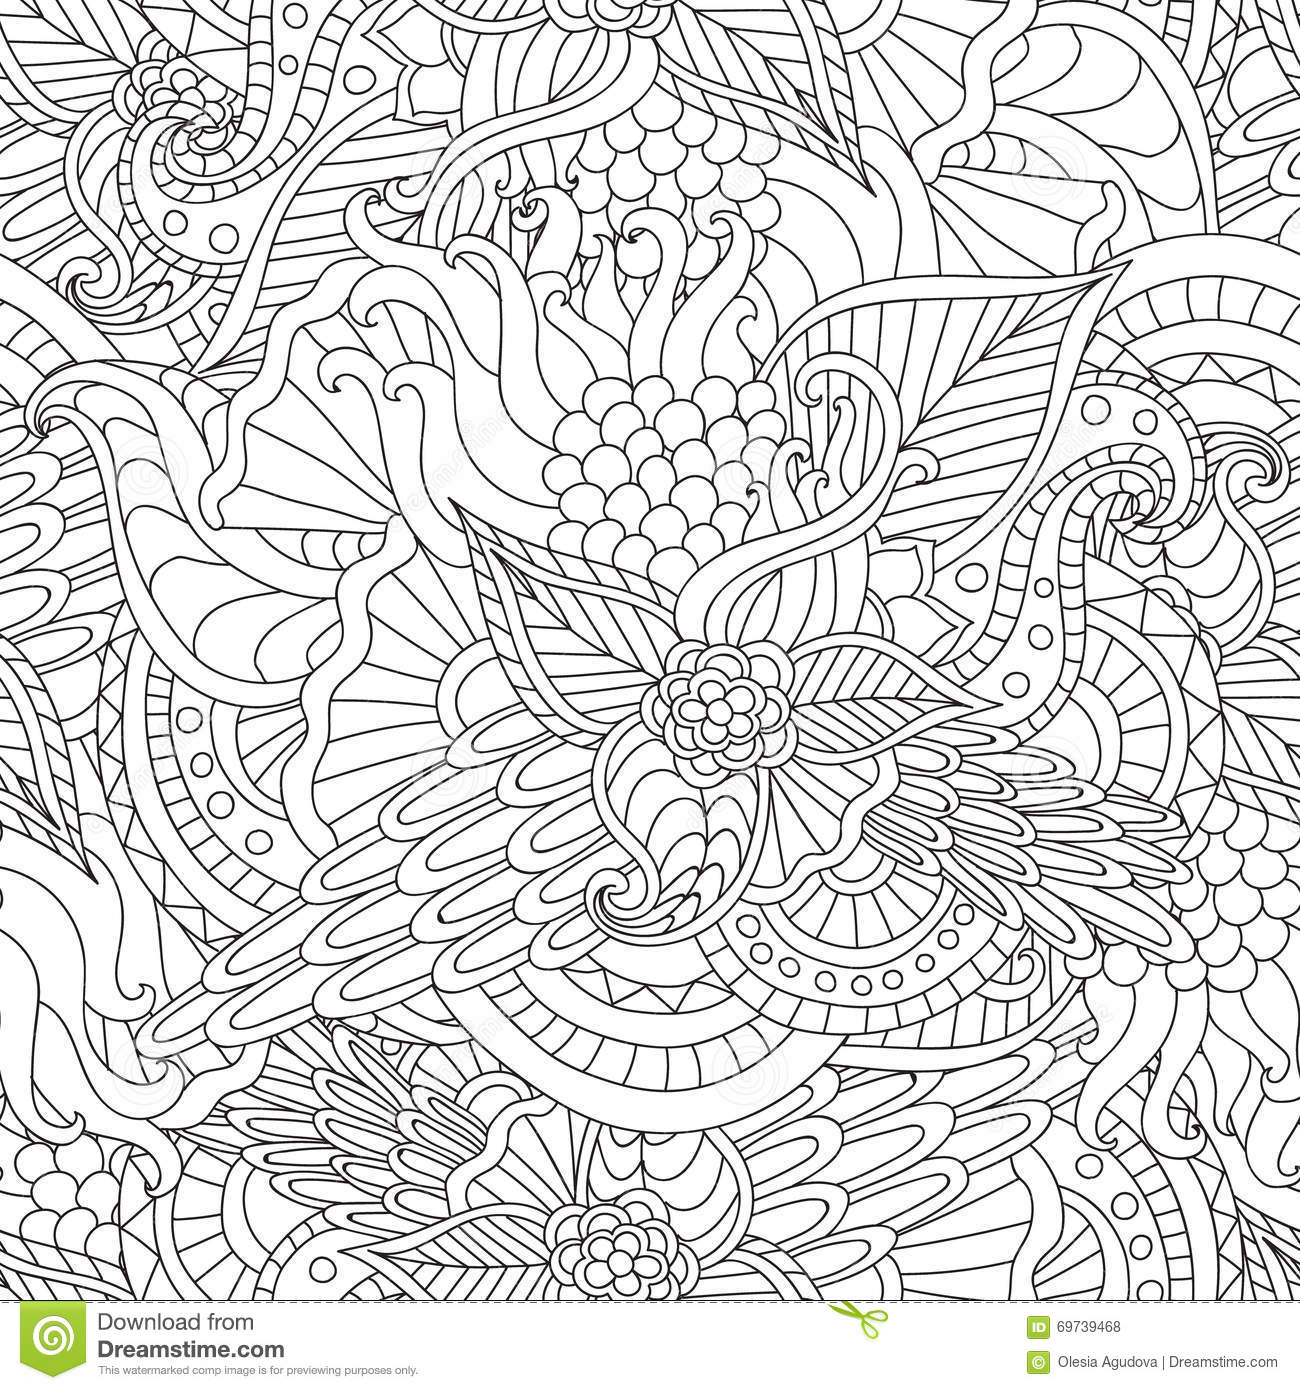 Pages For Adult Coloring Book Hand Drawn Artistic Ethnic Ornamental